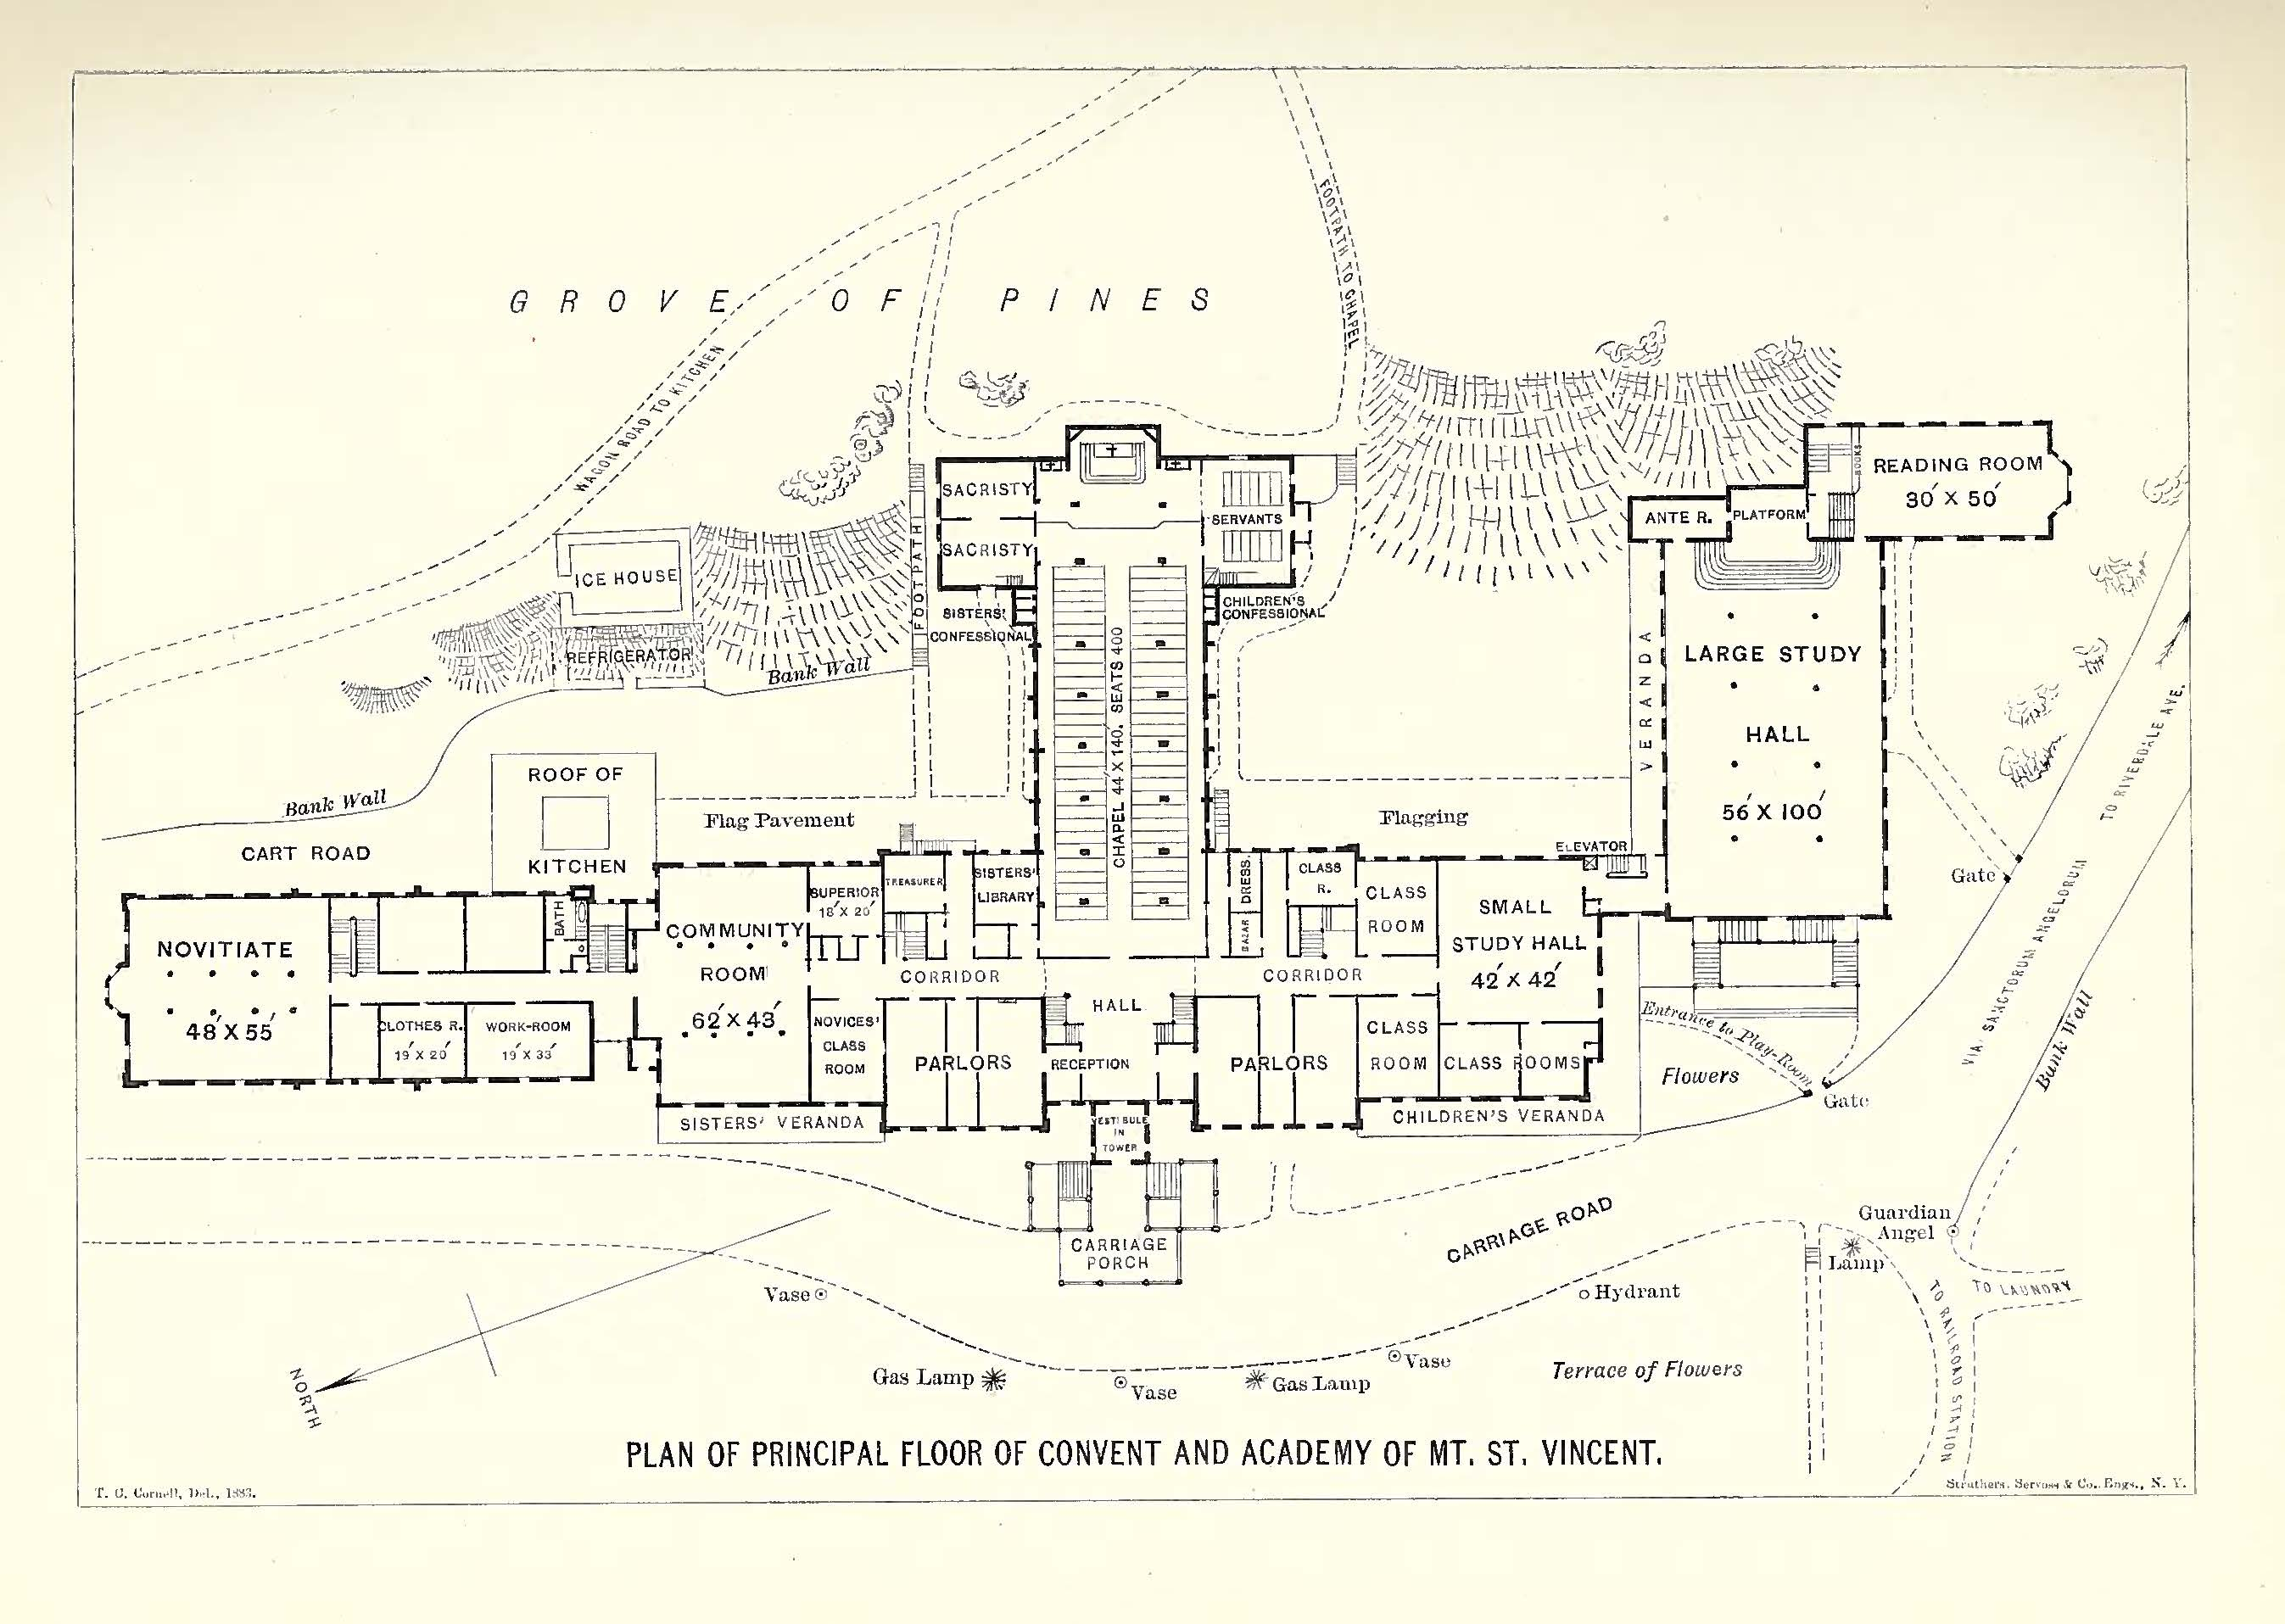 Map of the grounds of the Academy of Mount Saint Vincent, the first institution to offer higher learning for women in New York.